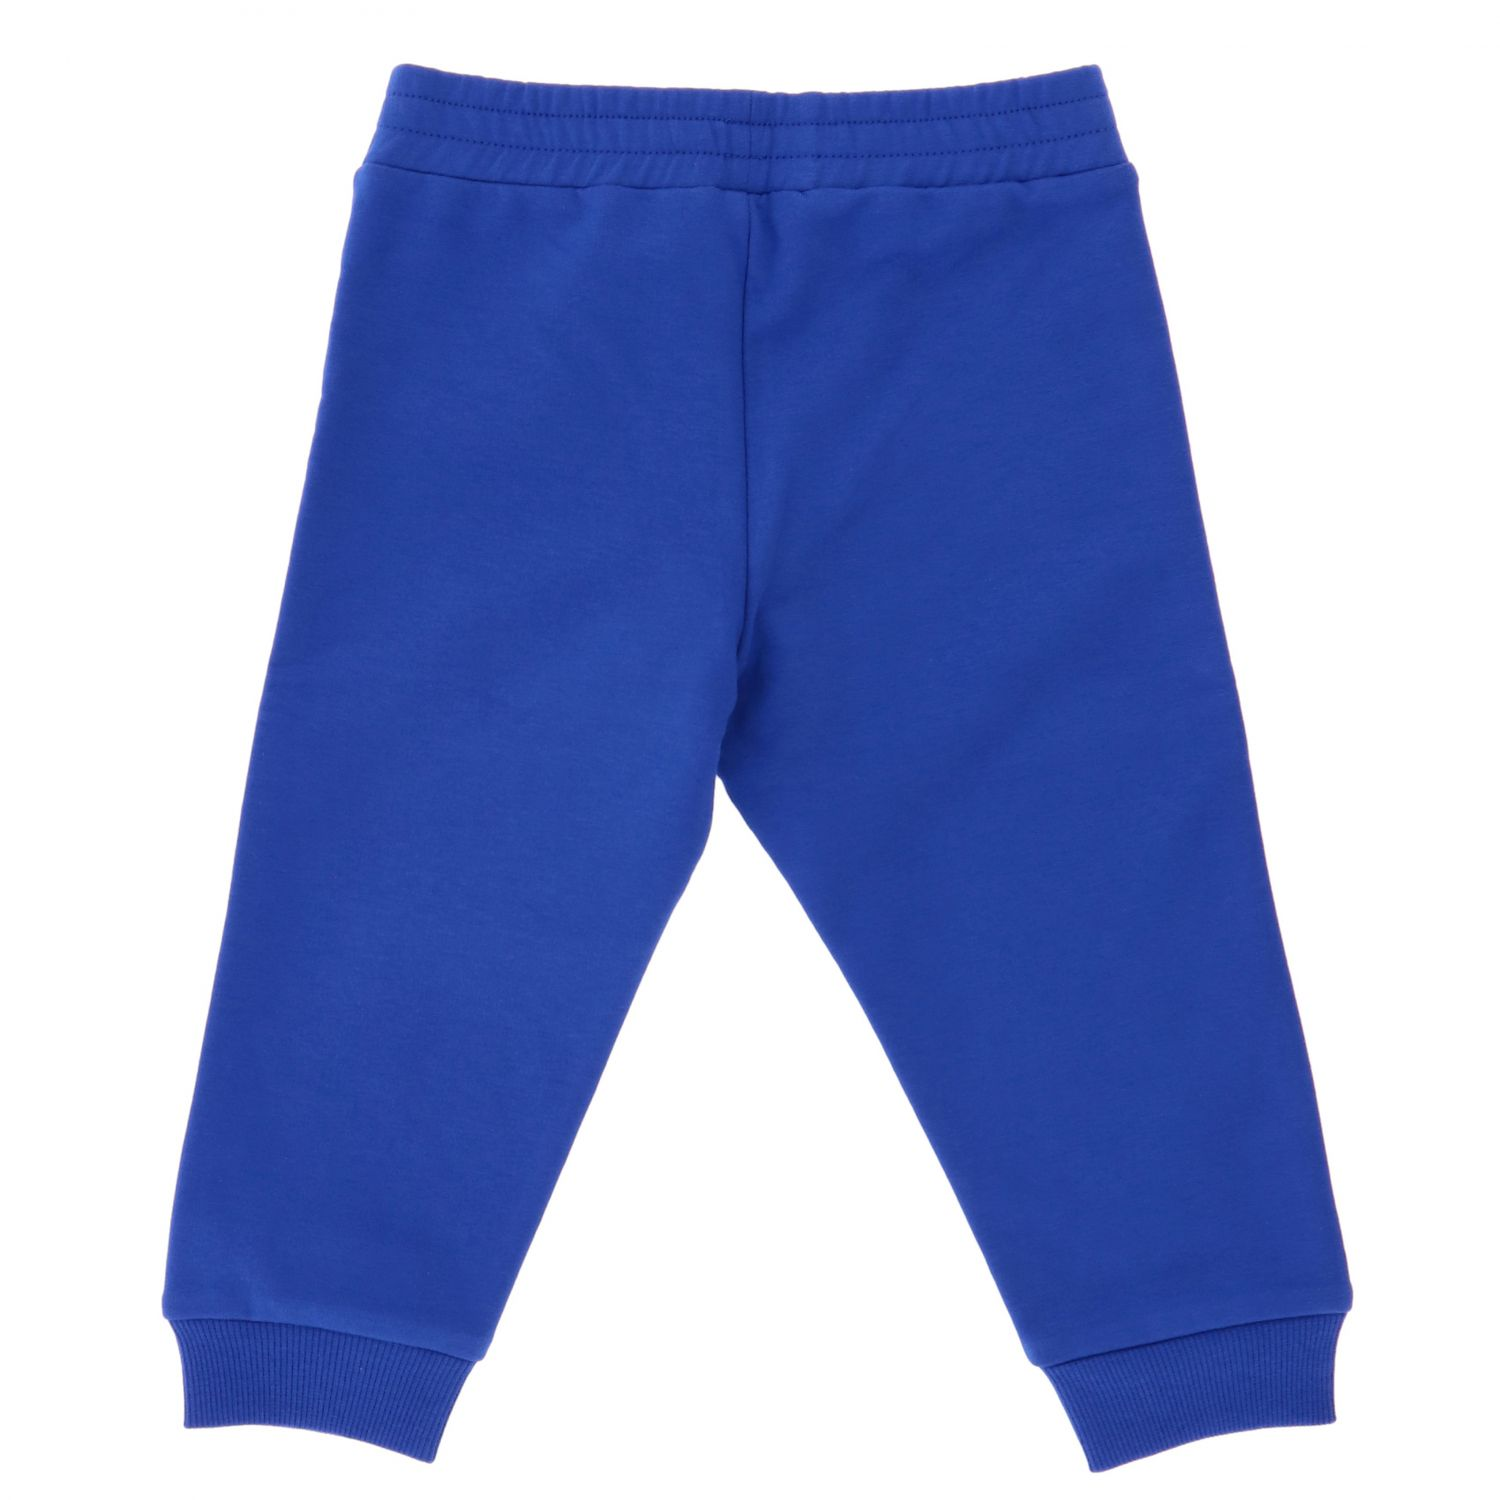 Pantalon enfant Moncler bleu royal 2